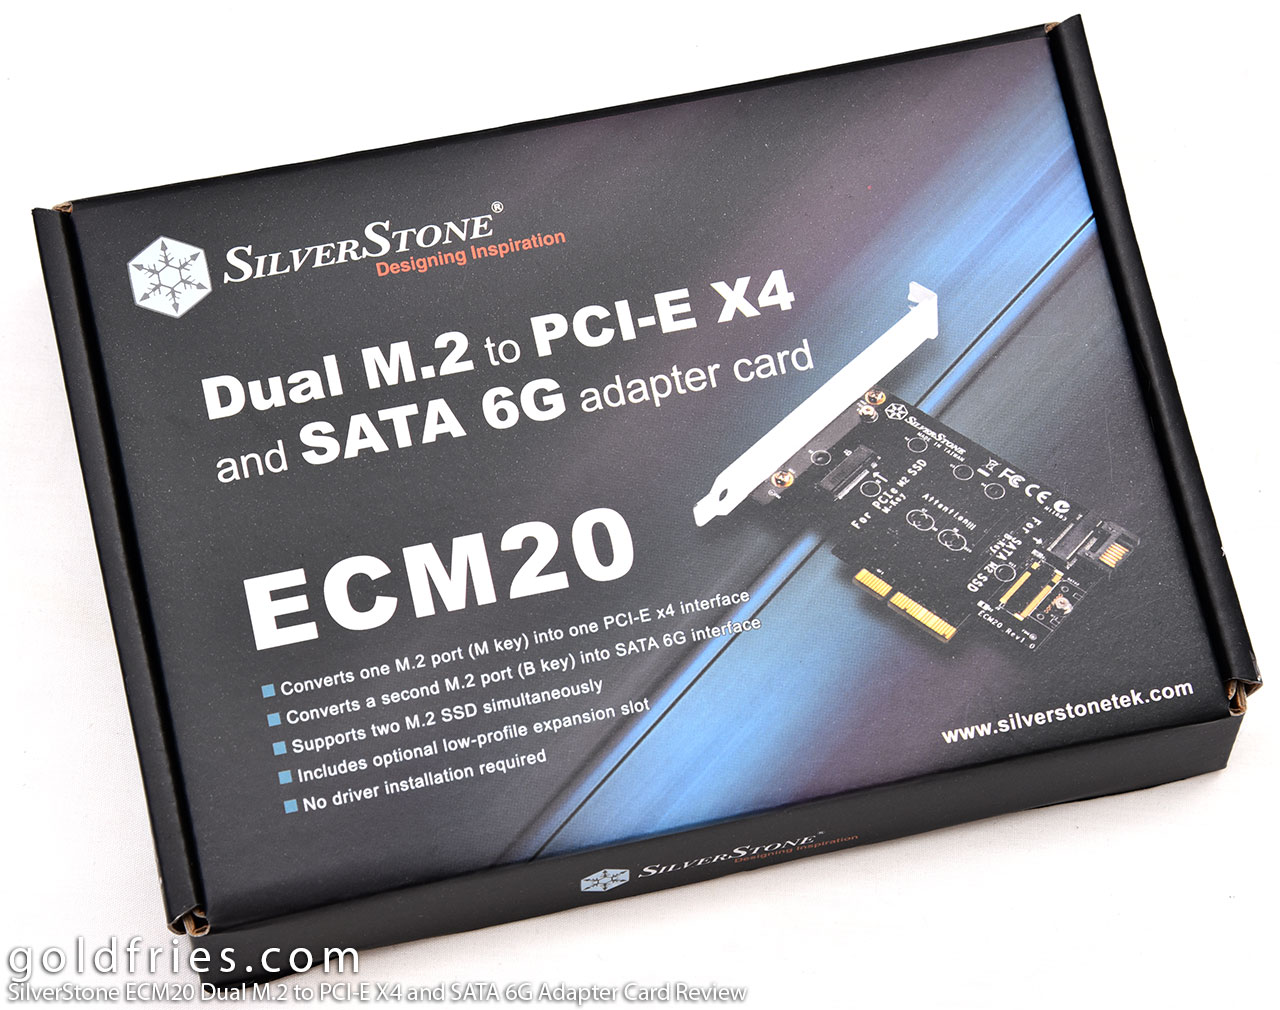 SilverStone ECM20 Dual M.2 to PCI-E X4 and SATA 6G Adapter Card Review